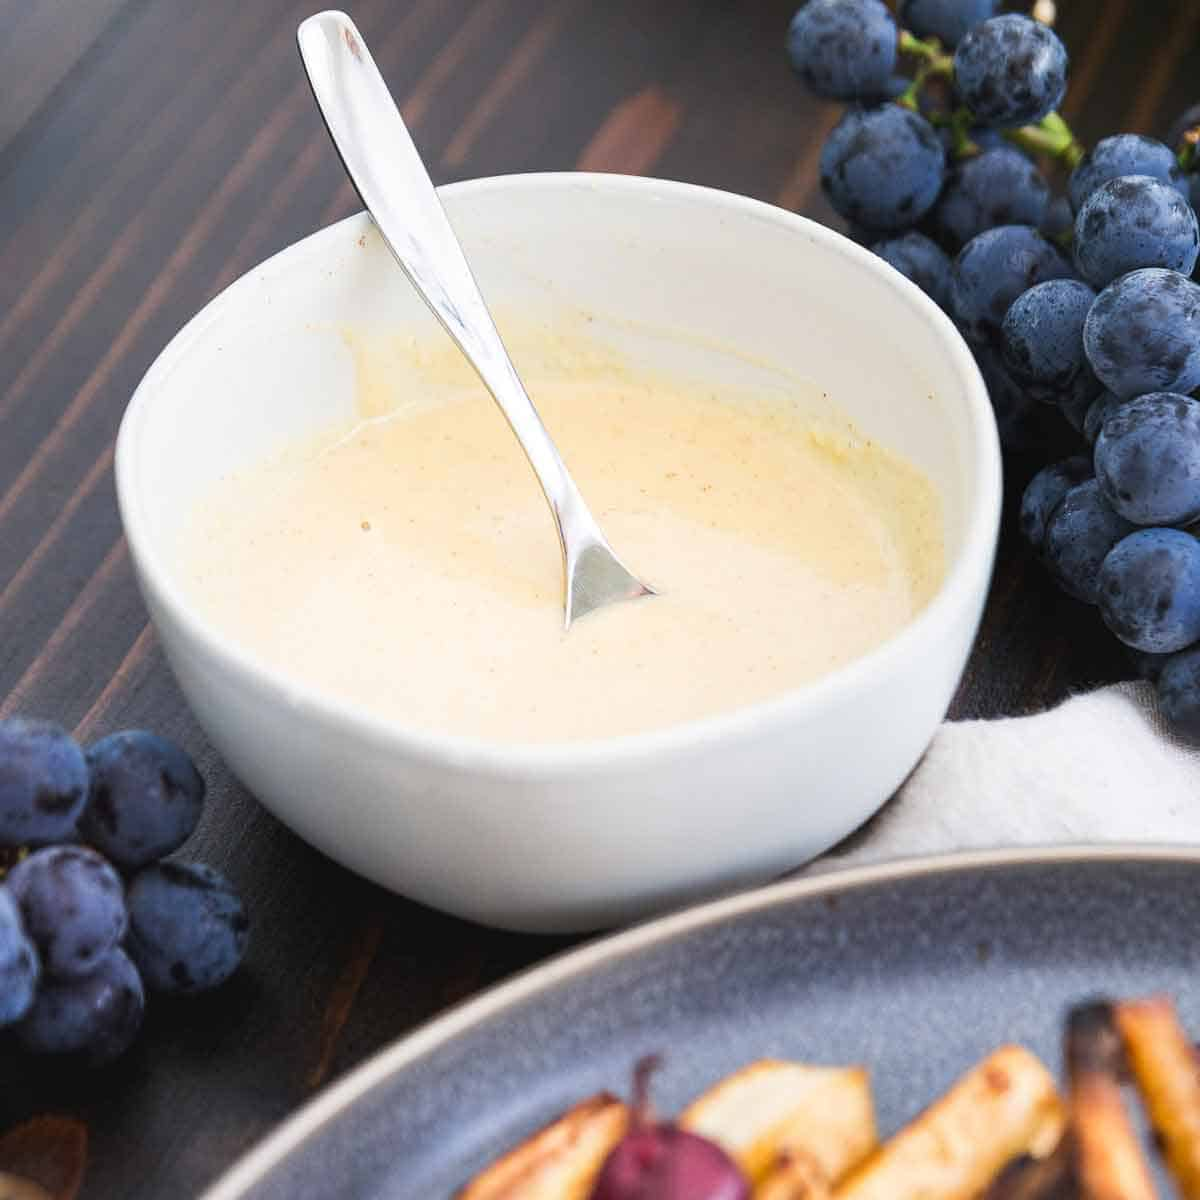 Sweetened with maple syrup and flavored with cinnamon and vanilla, this hummus dressing is the perfect sweet note drizzled on top of roasted parsnips.